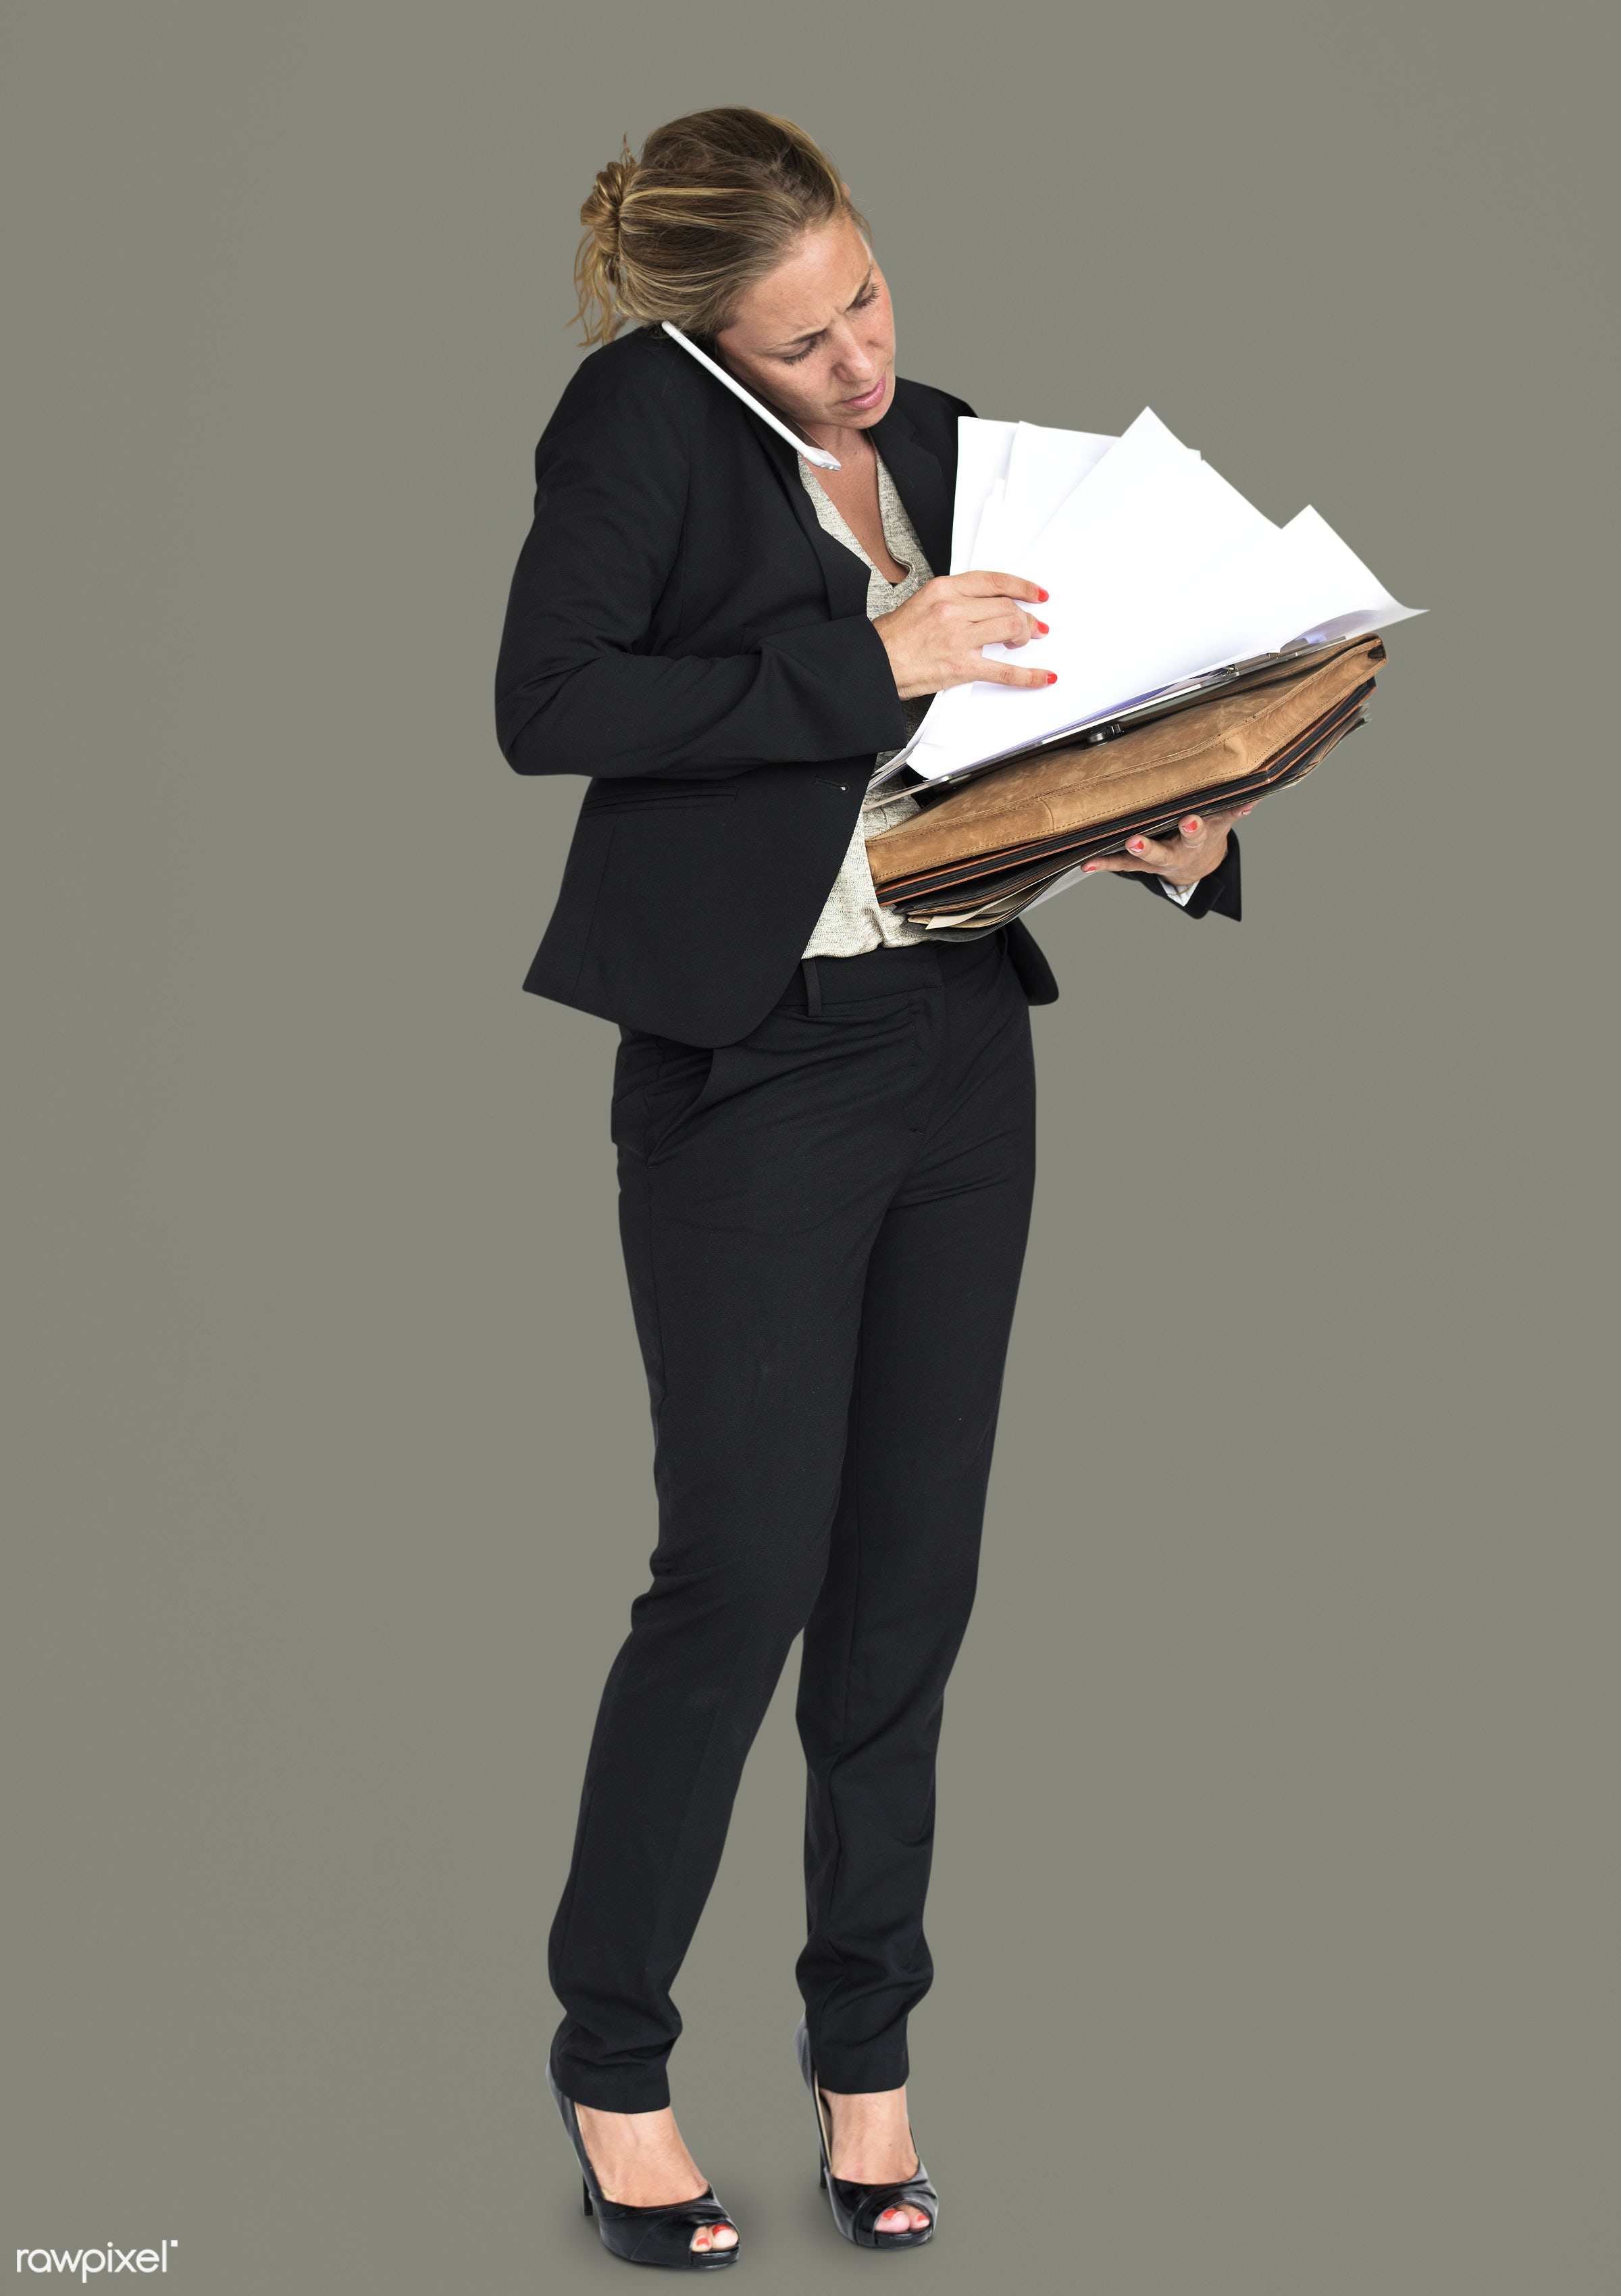 expression, studio, person, phone, busy, business folders, people, business, caucasian, girl, woman, formal attire, work,...